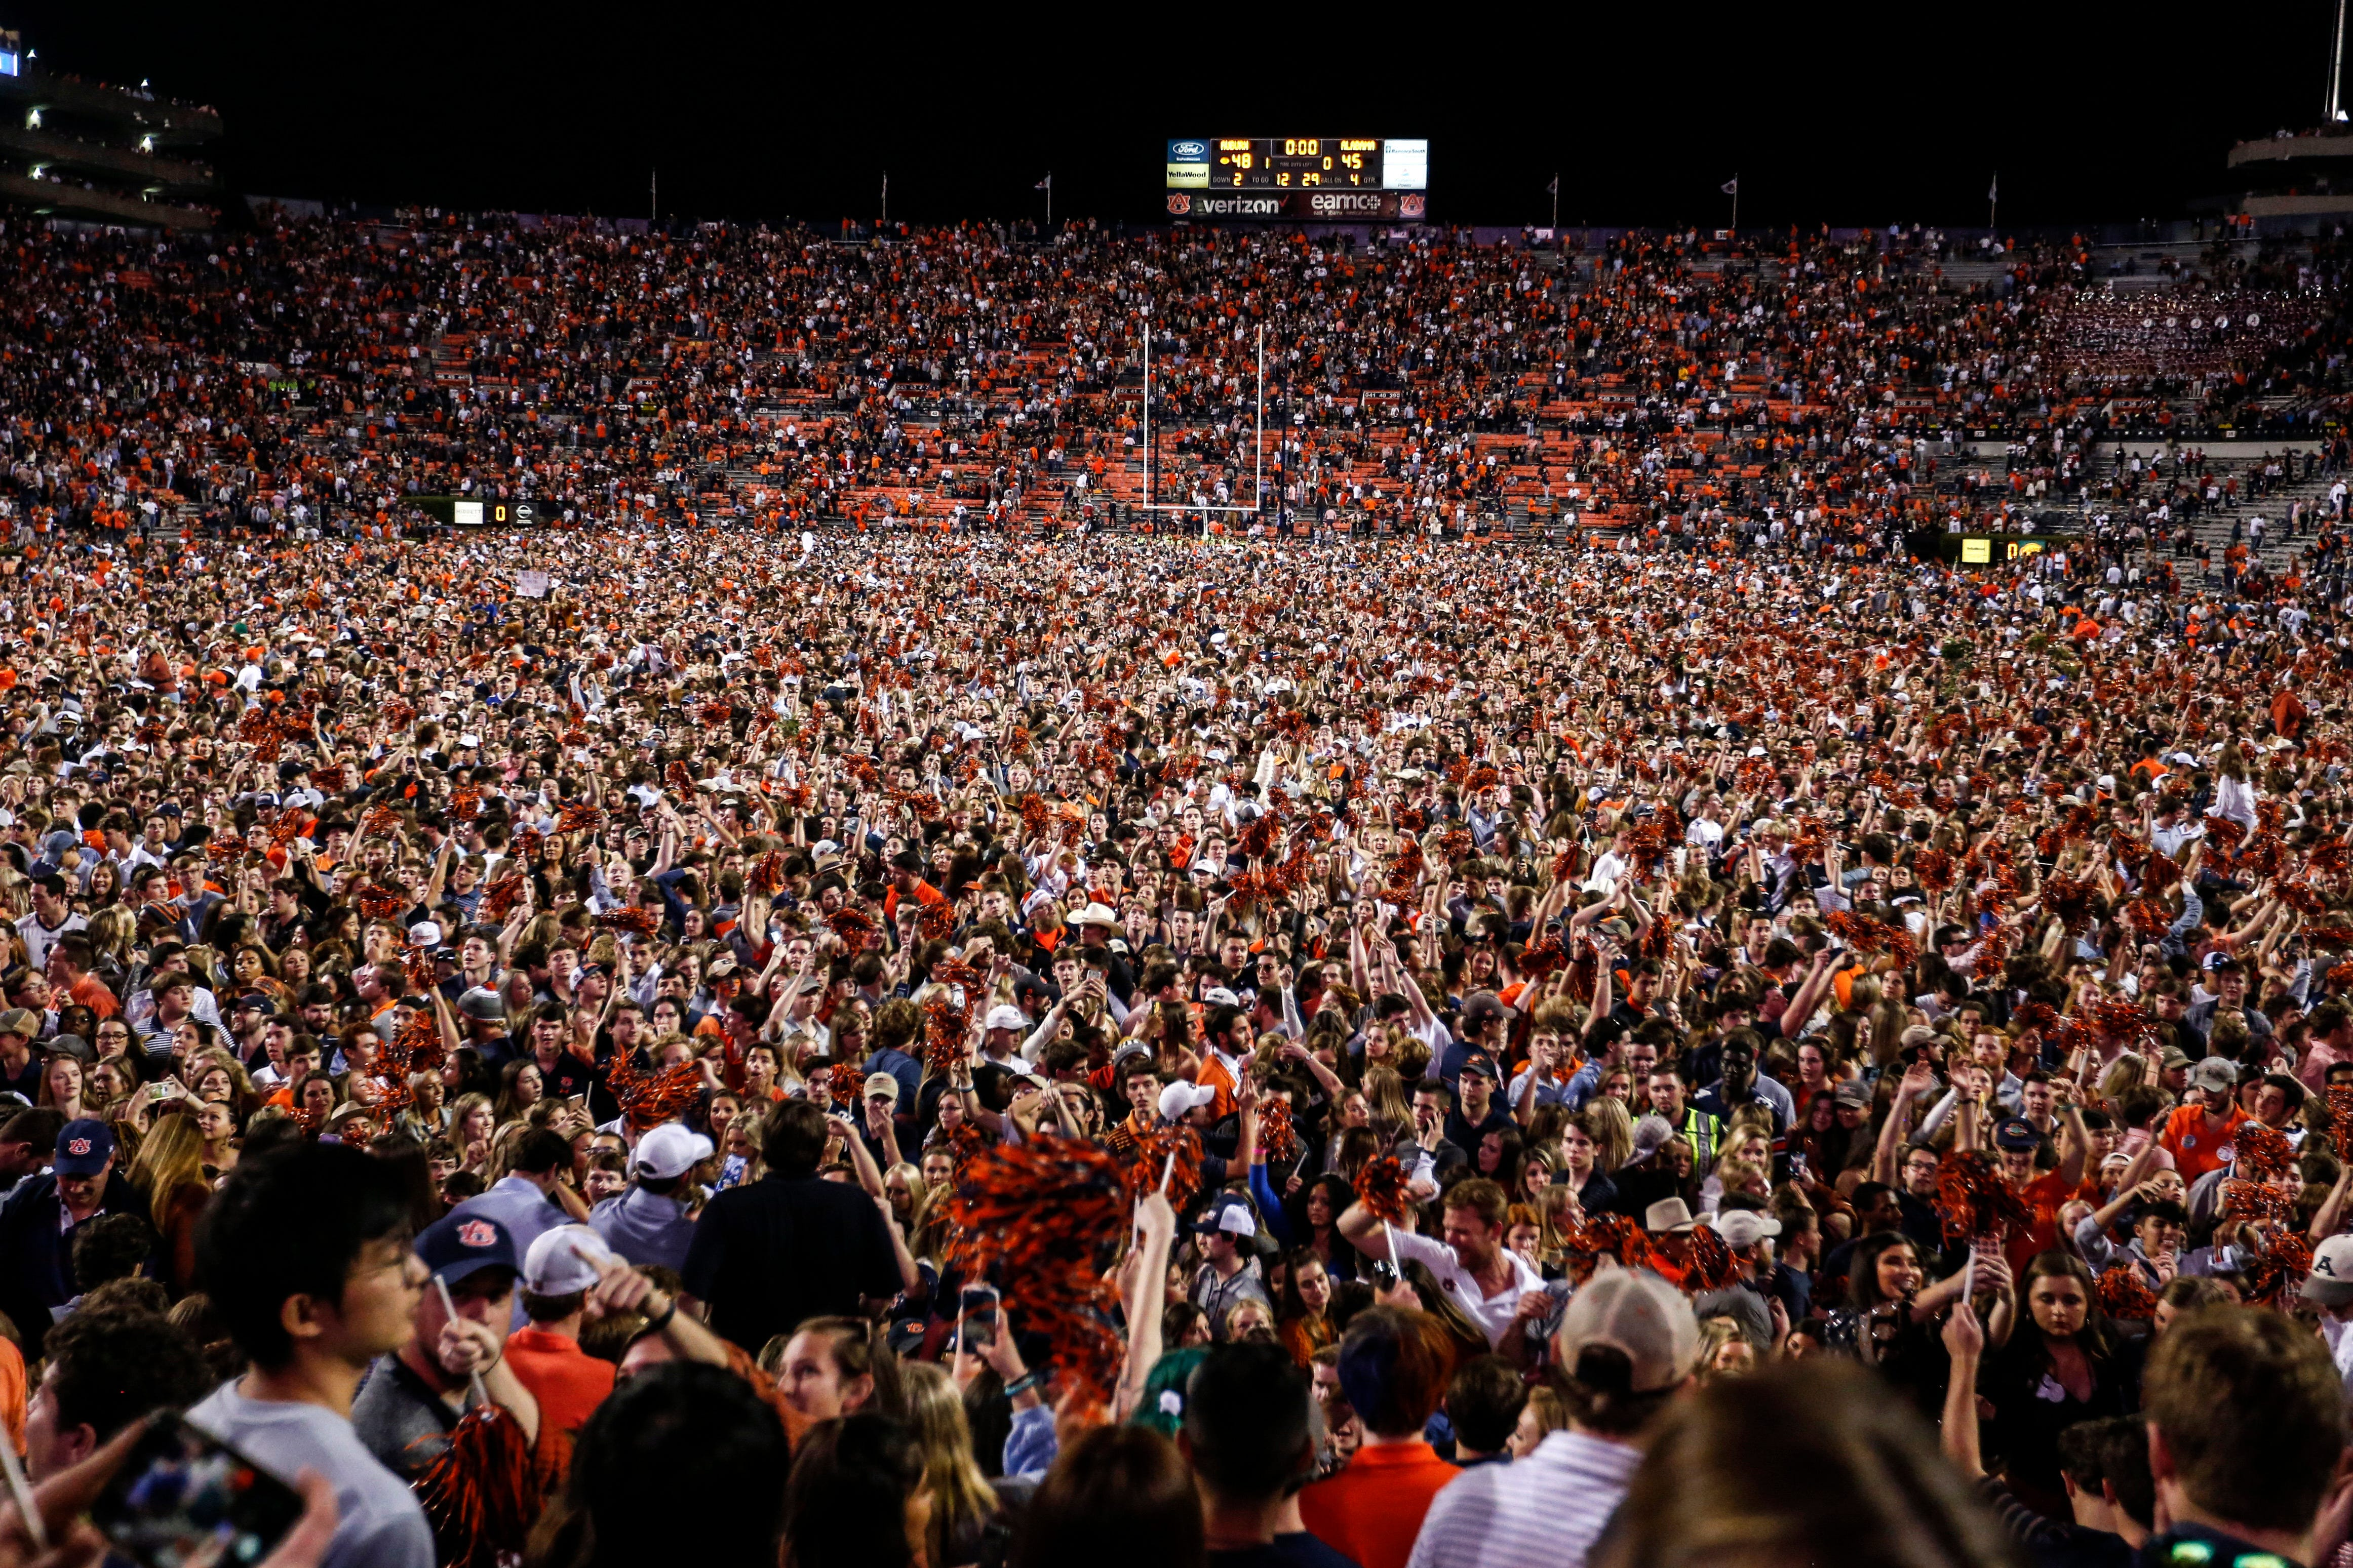 Auburn fined $250,000 after fans rush the field to celebrate Iron Bowl win